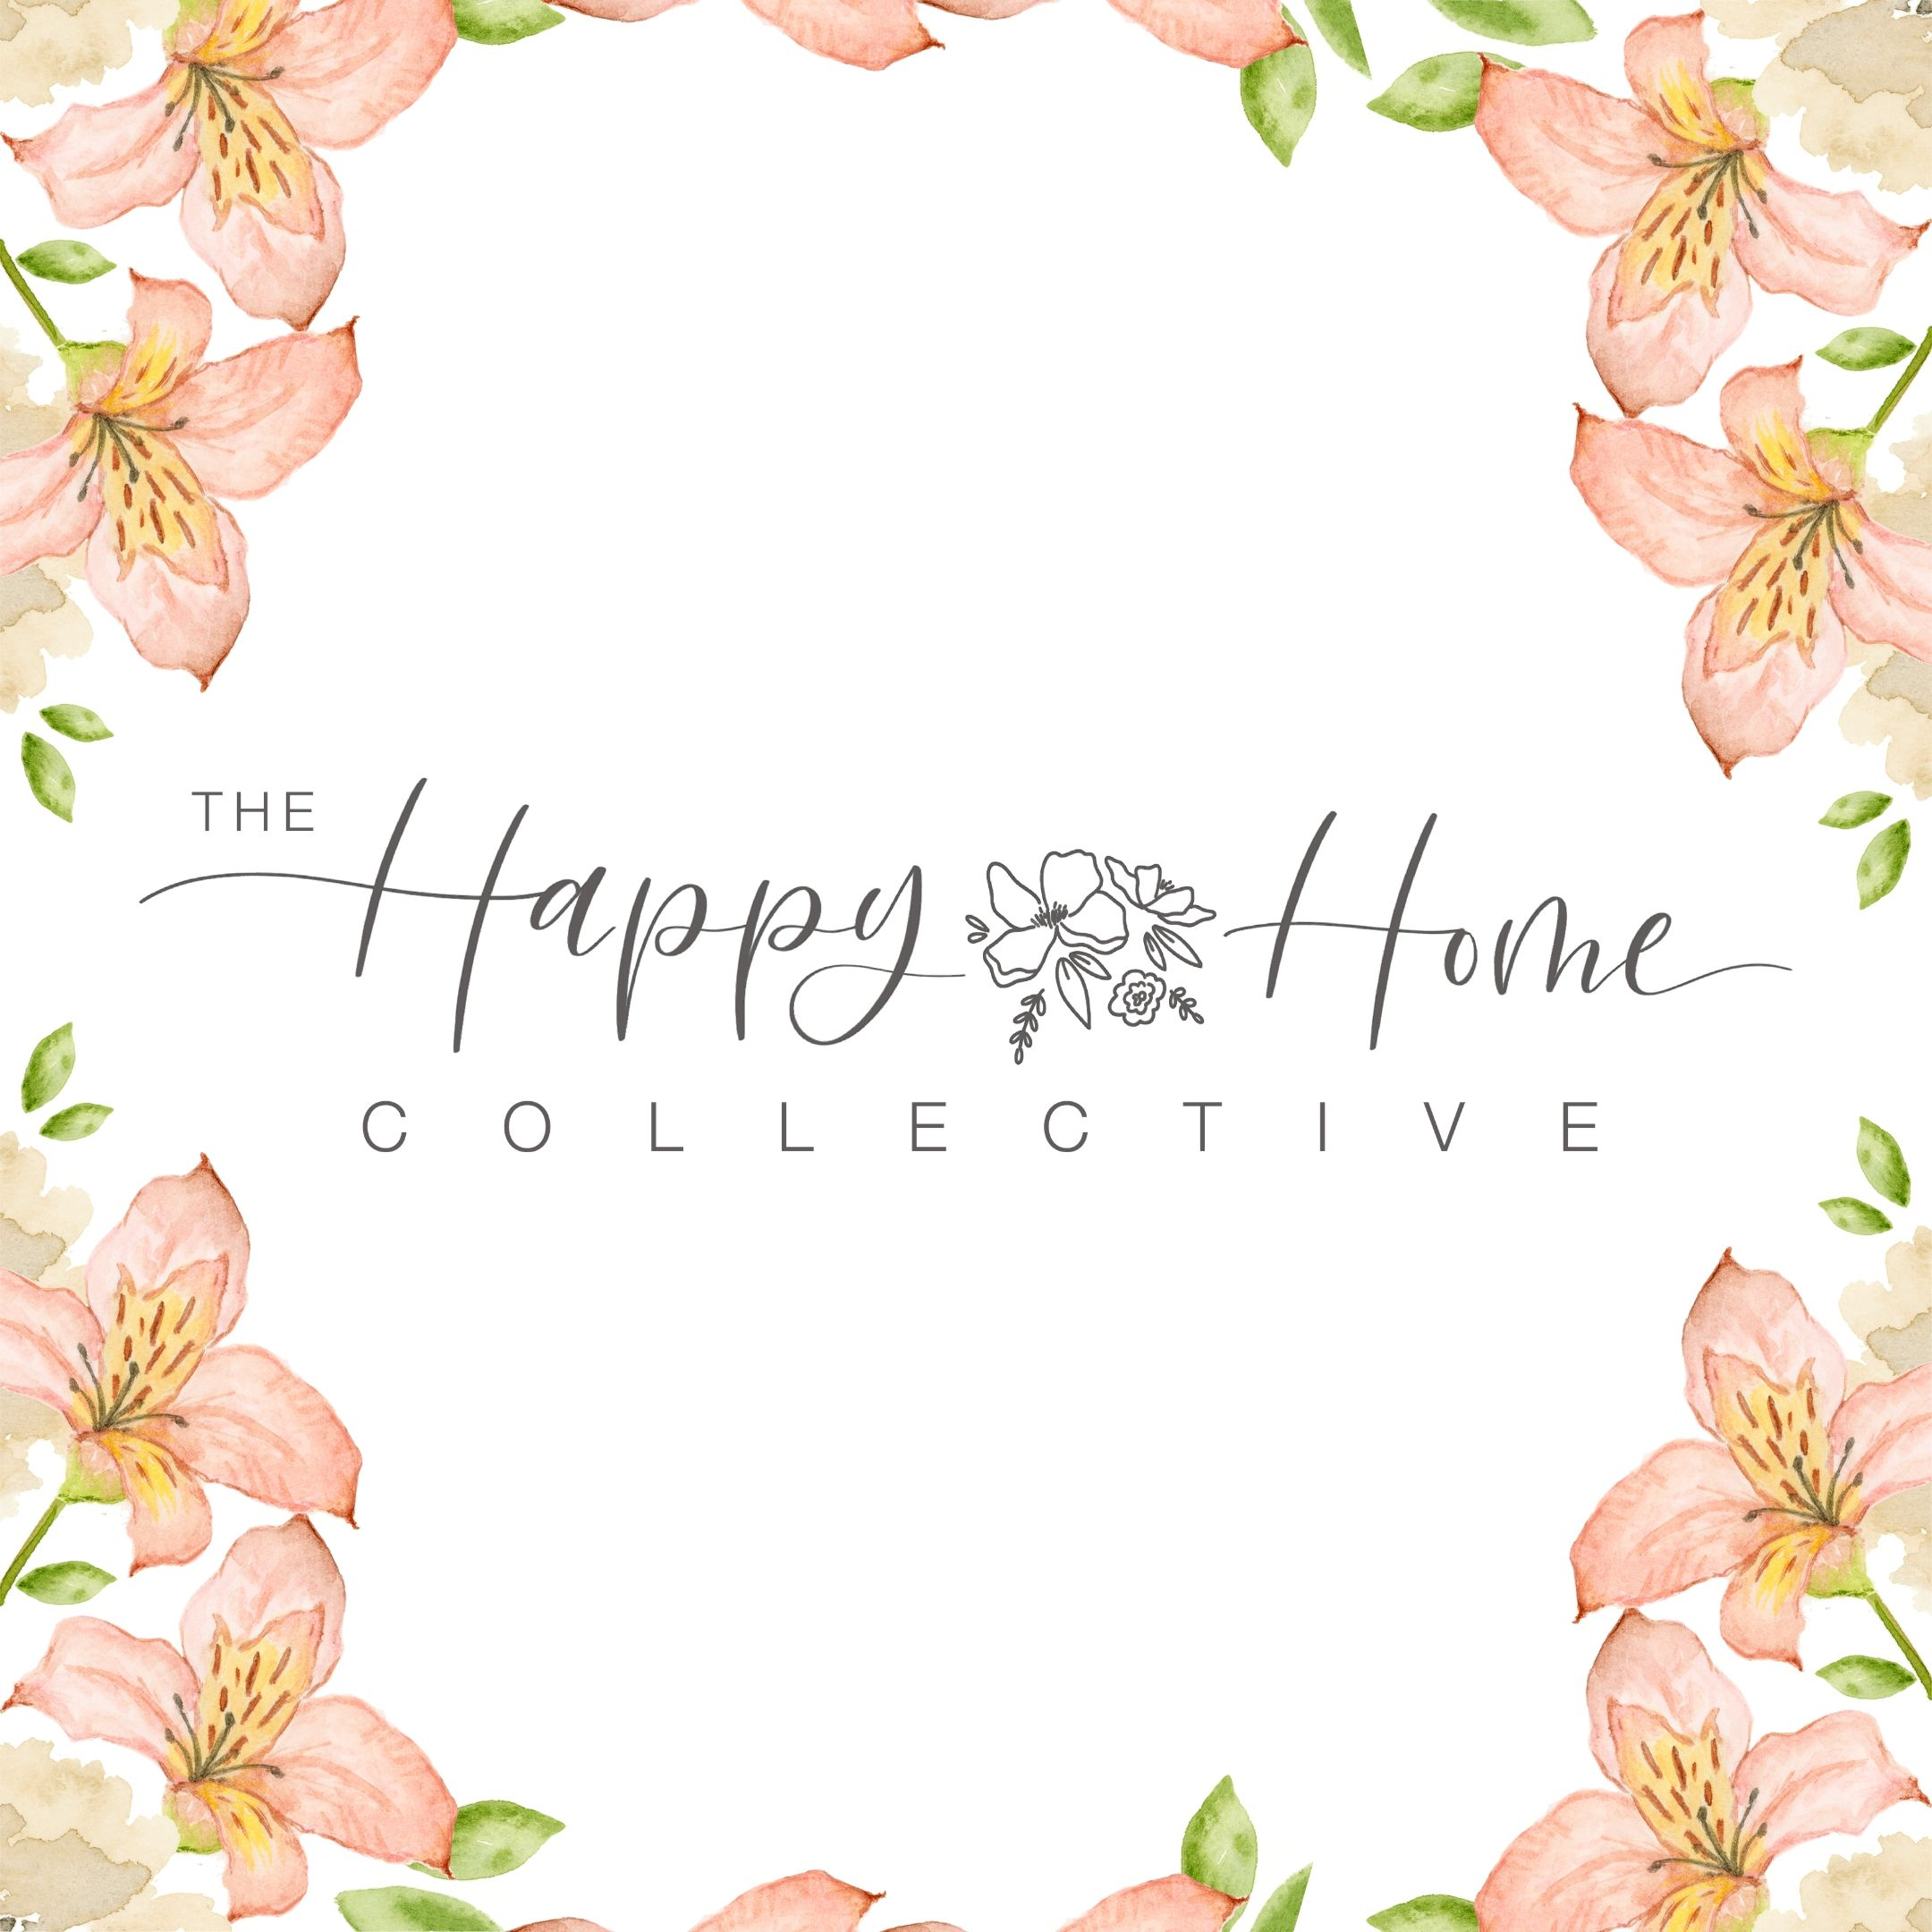 Happy Home Collective logo1